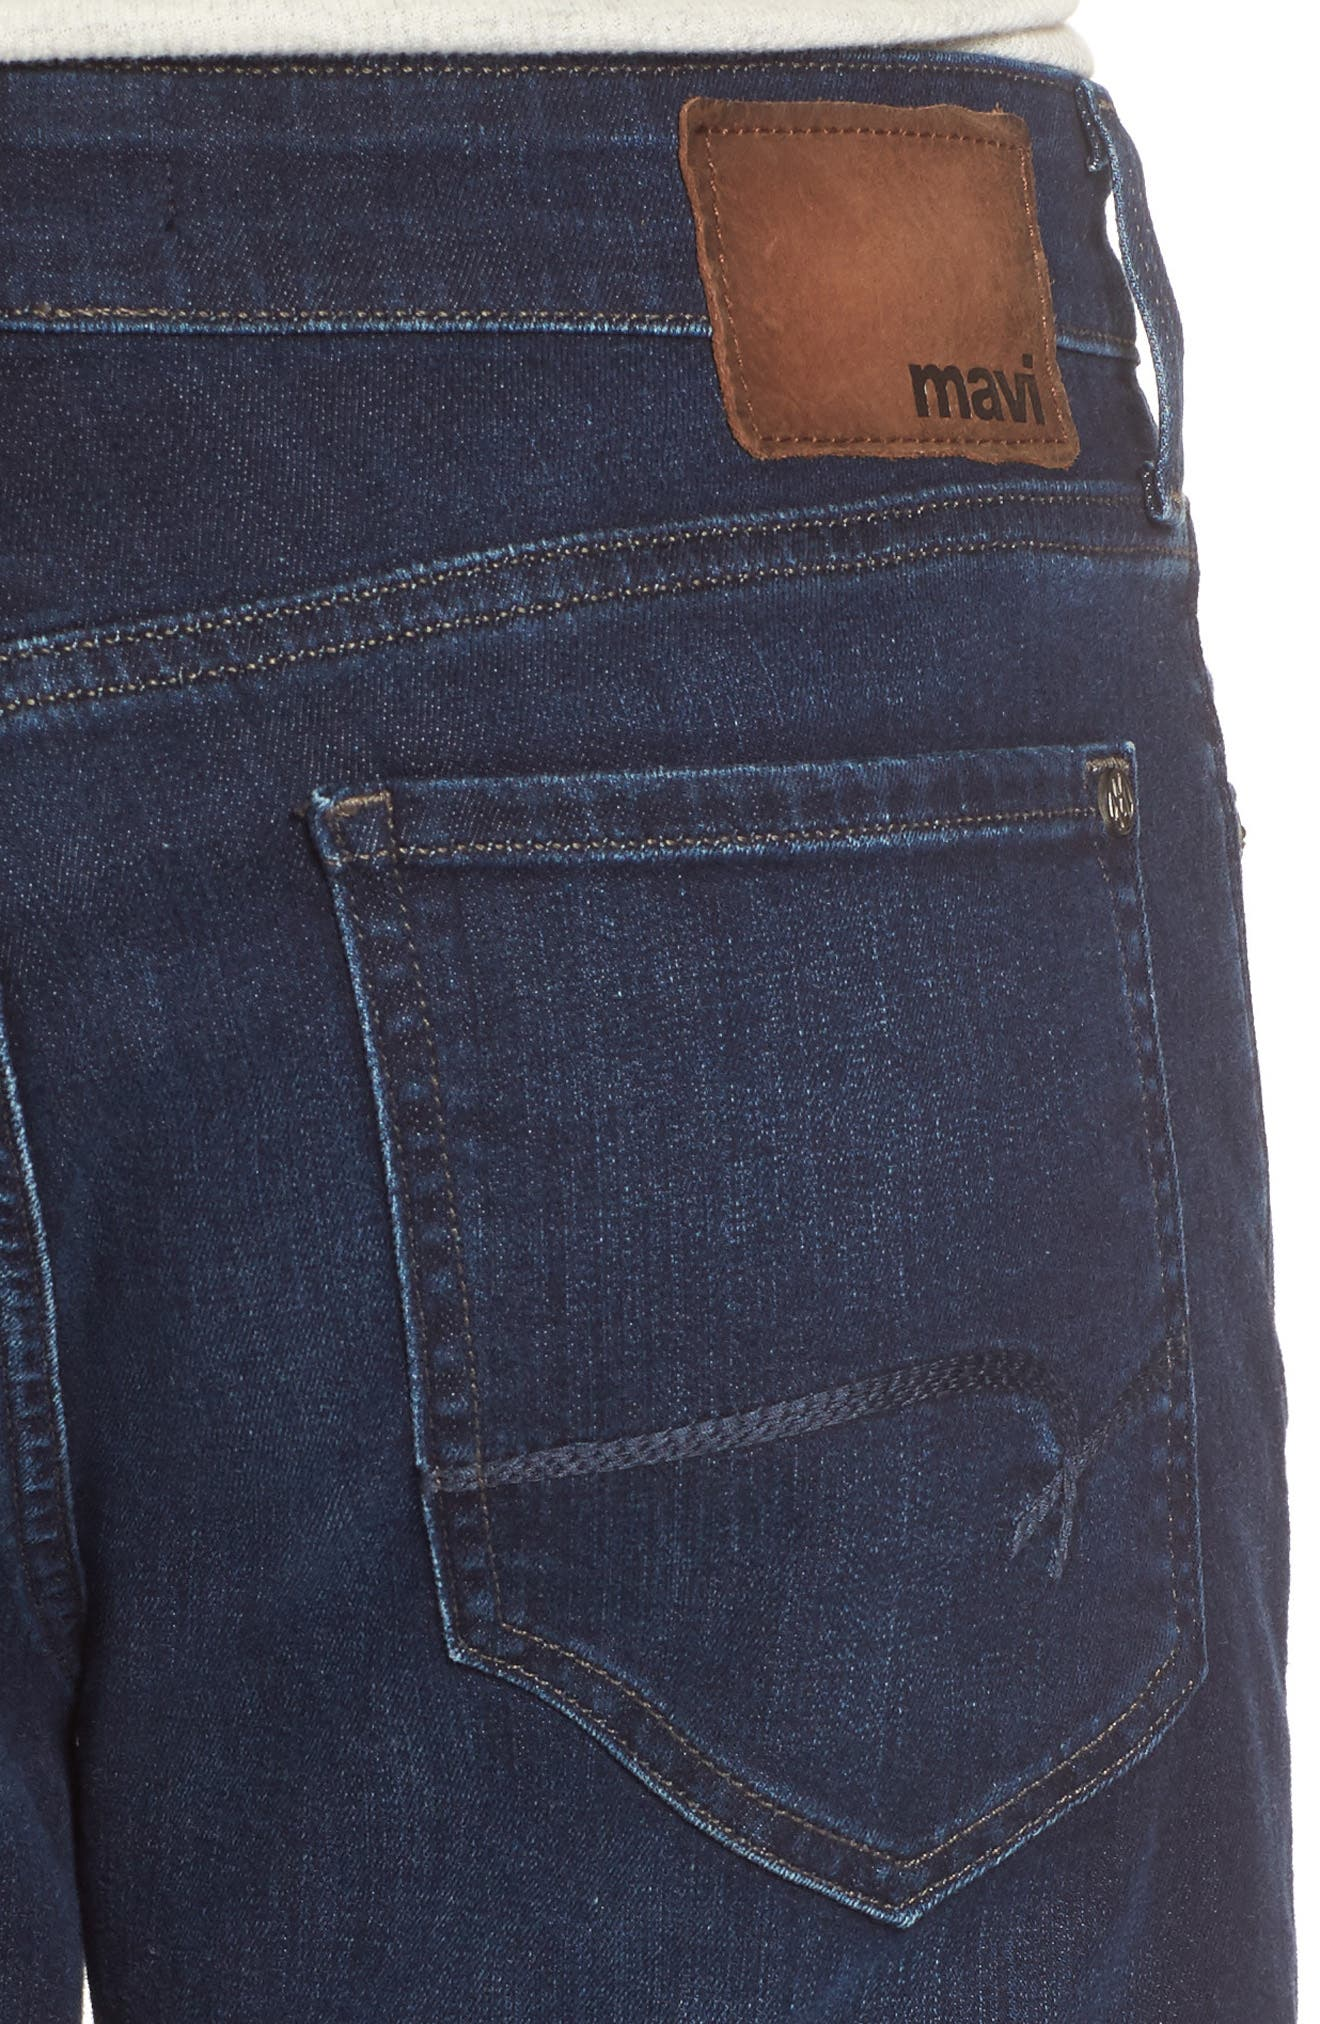 Myles Straight Fit Jeans,                             Alternate thumbnail 4, color,                             Deep Clean Comfort